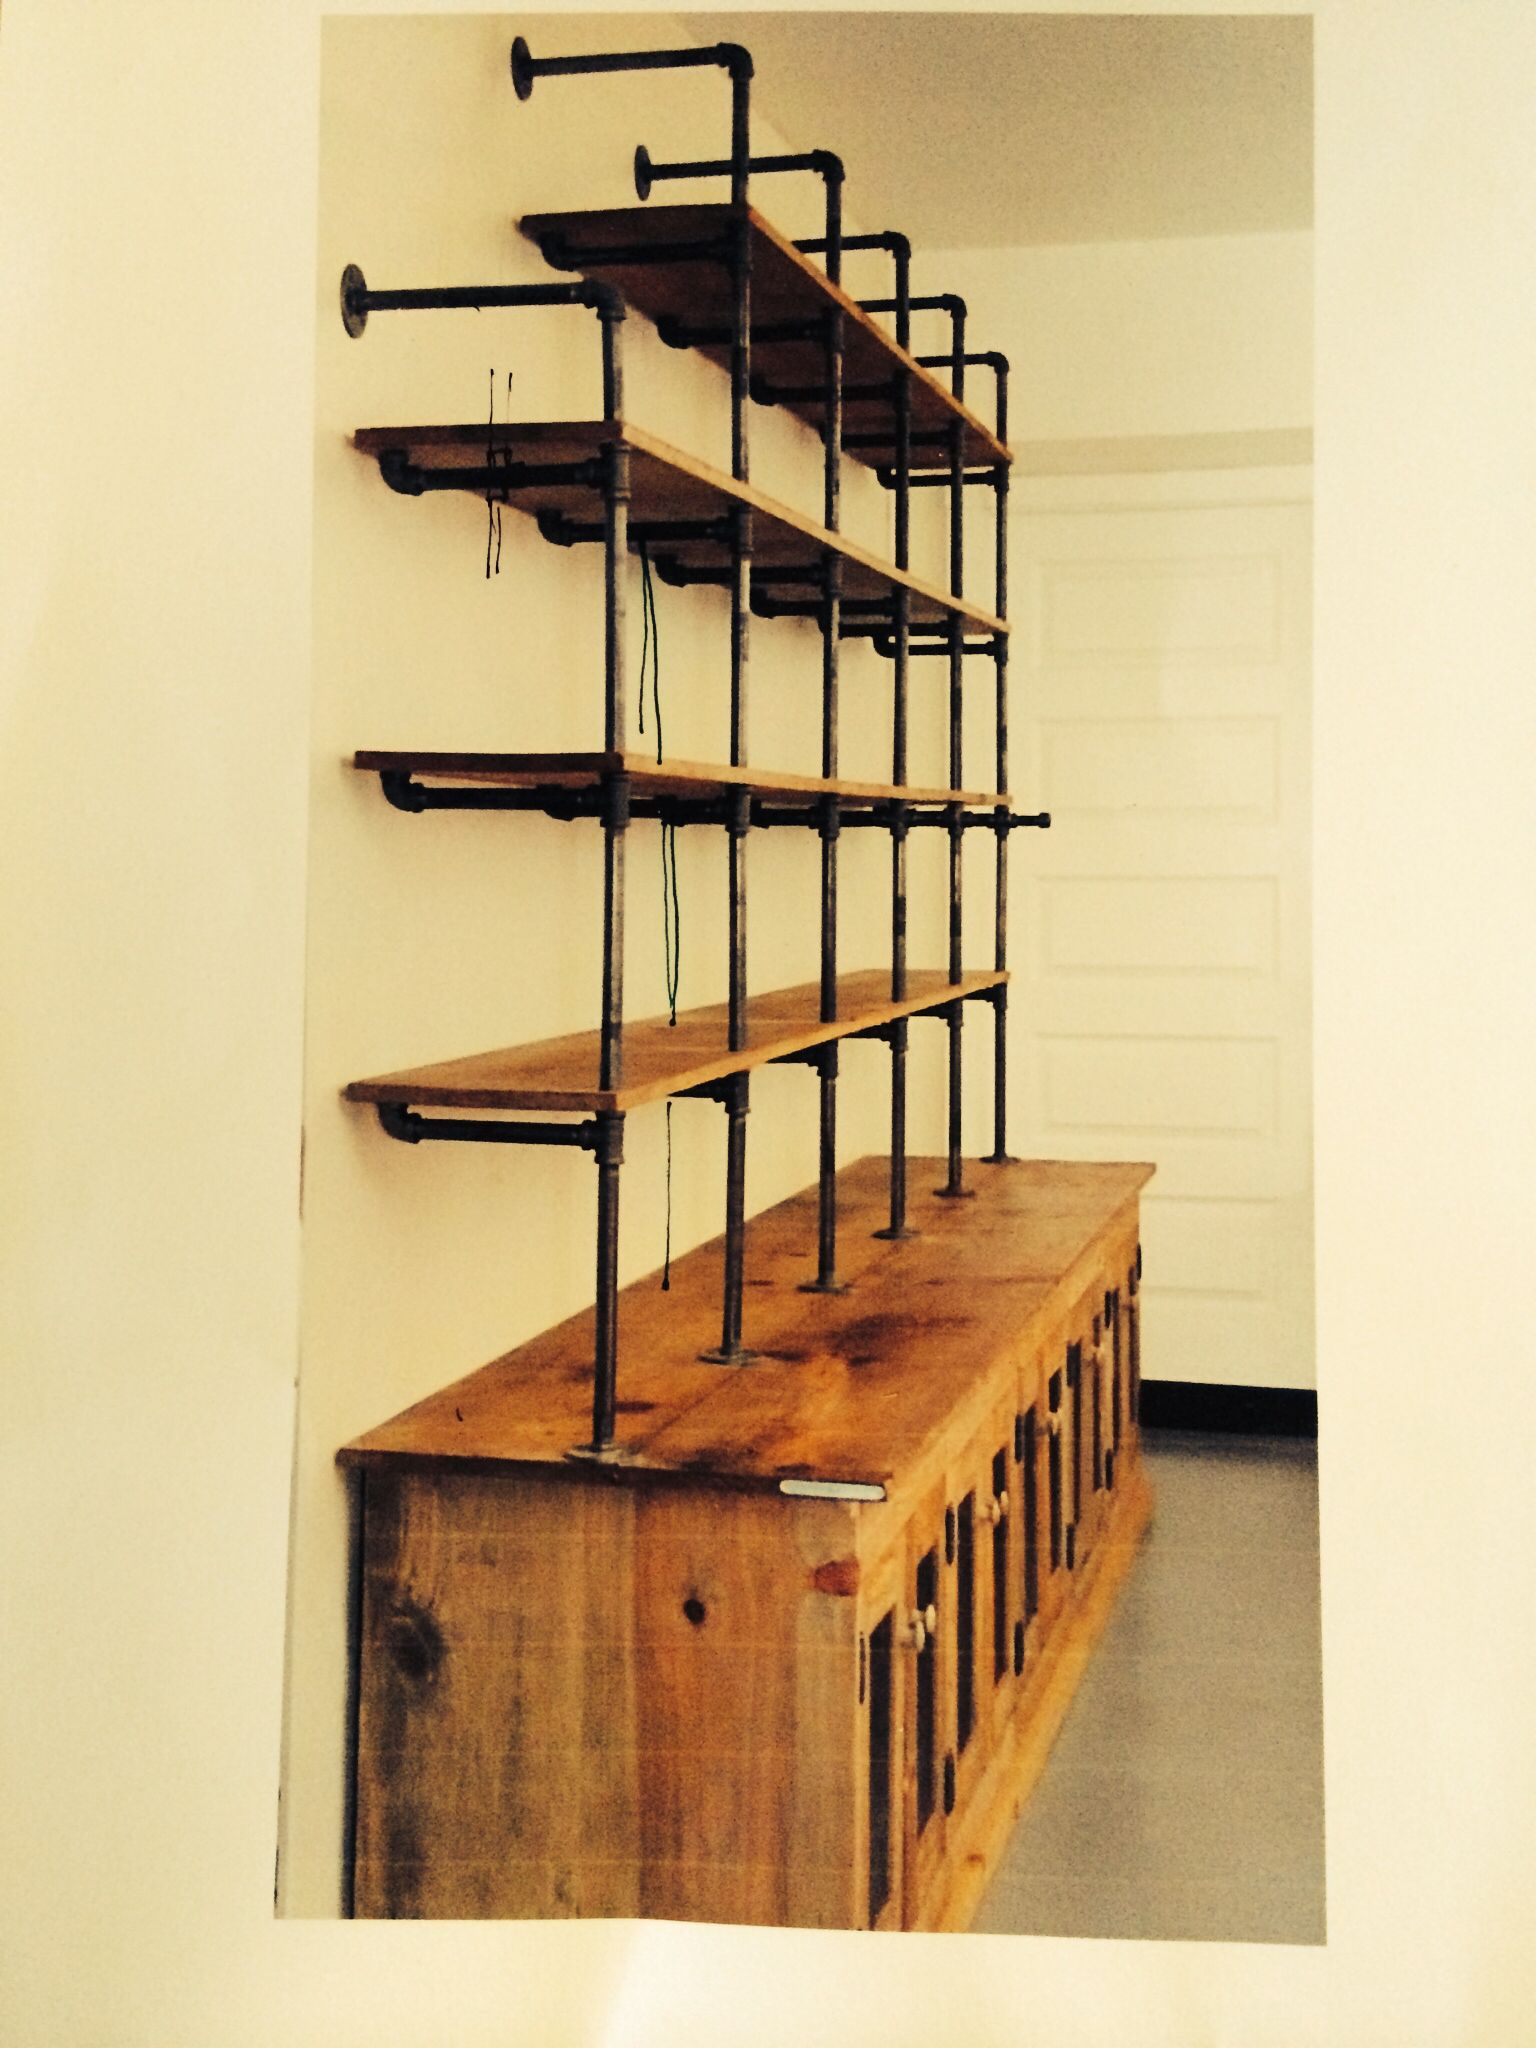 Shelving with plumbing reference | Matouk Factory: Industrial ...